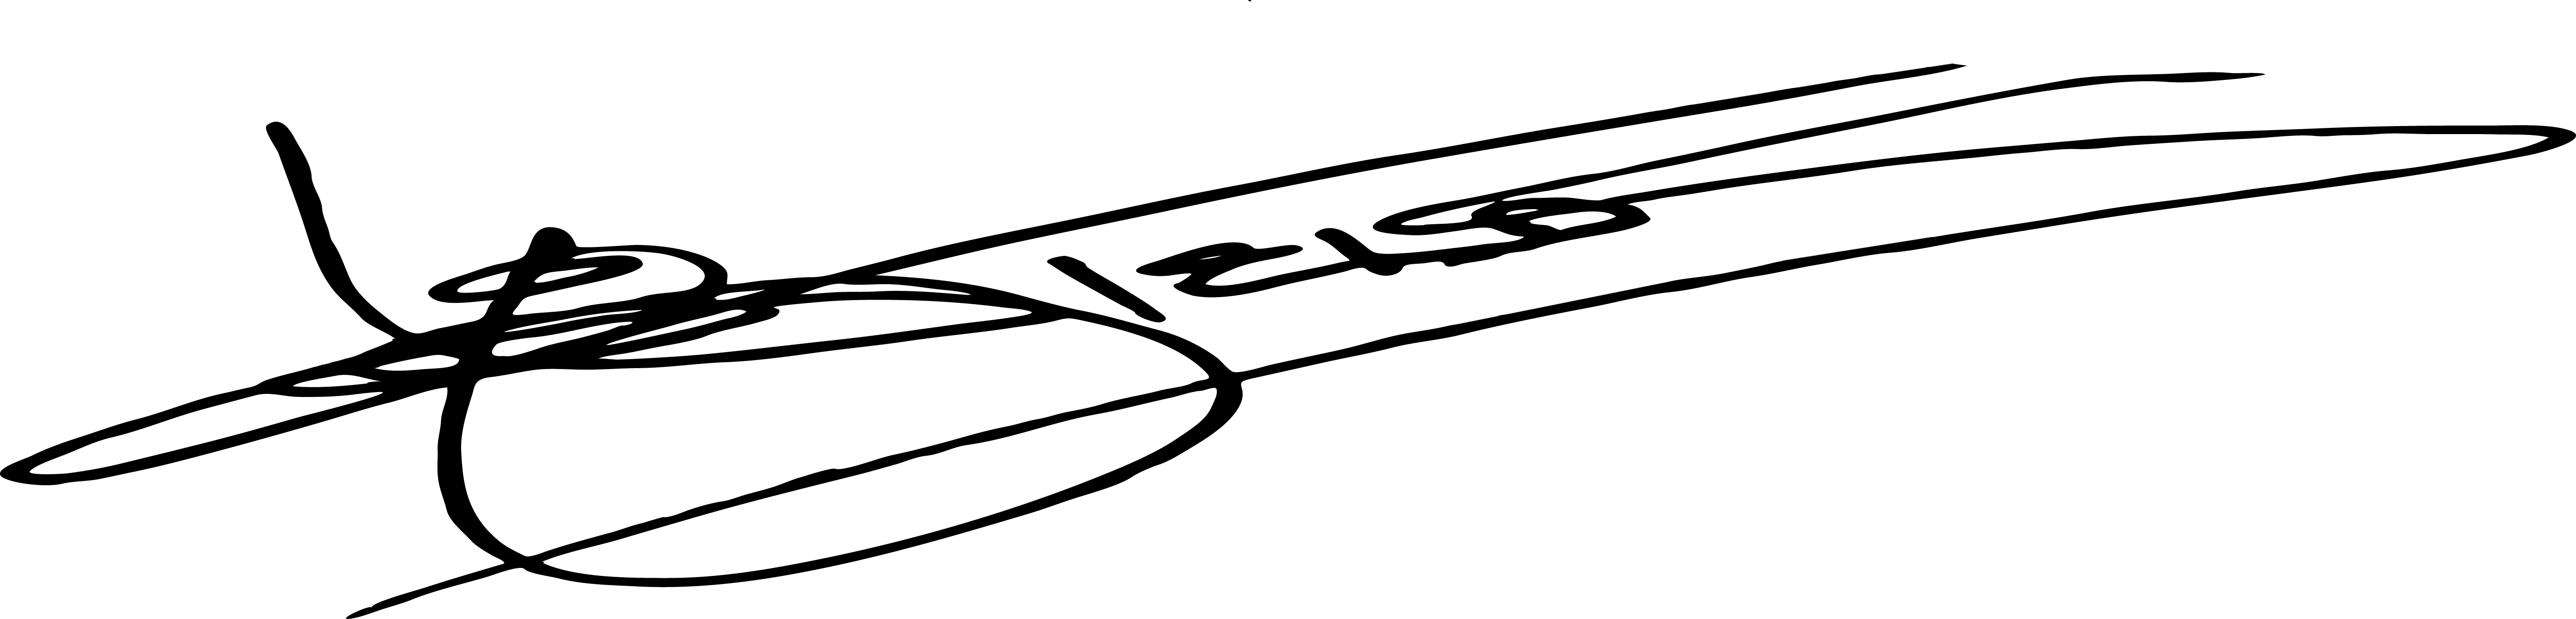 Laurie Fields's Signature